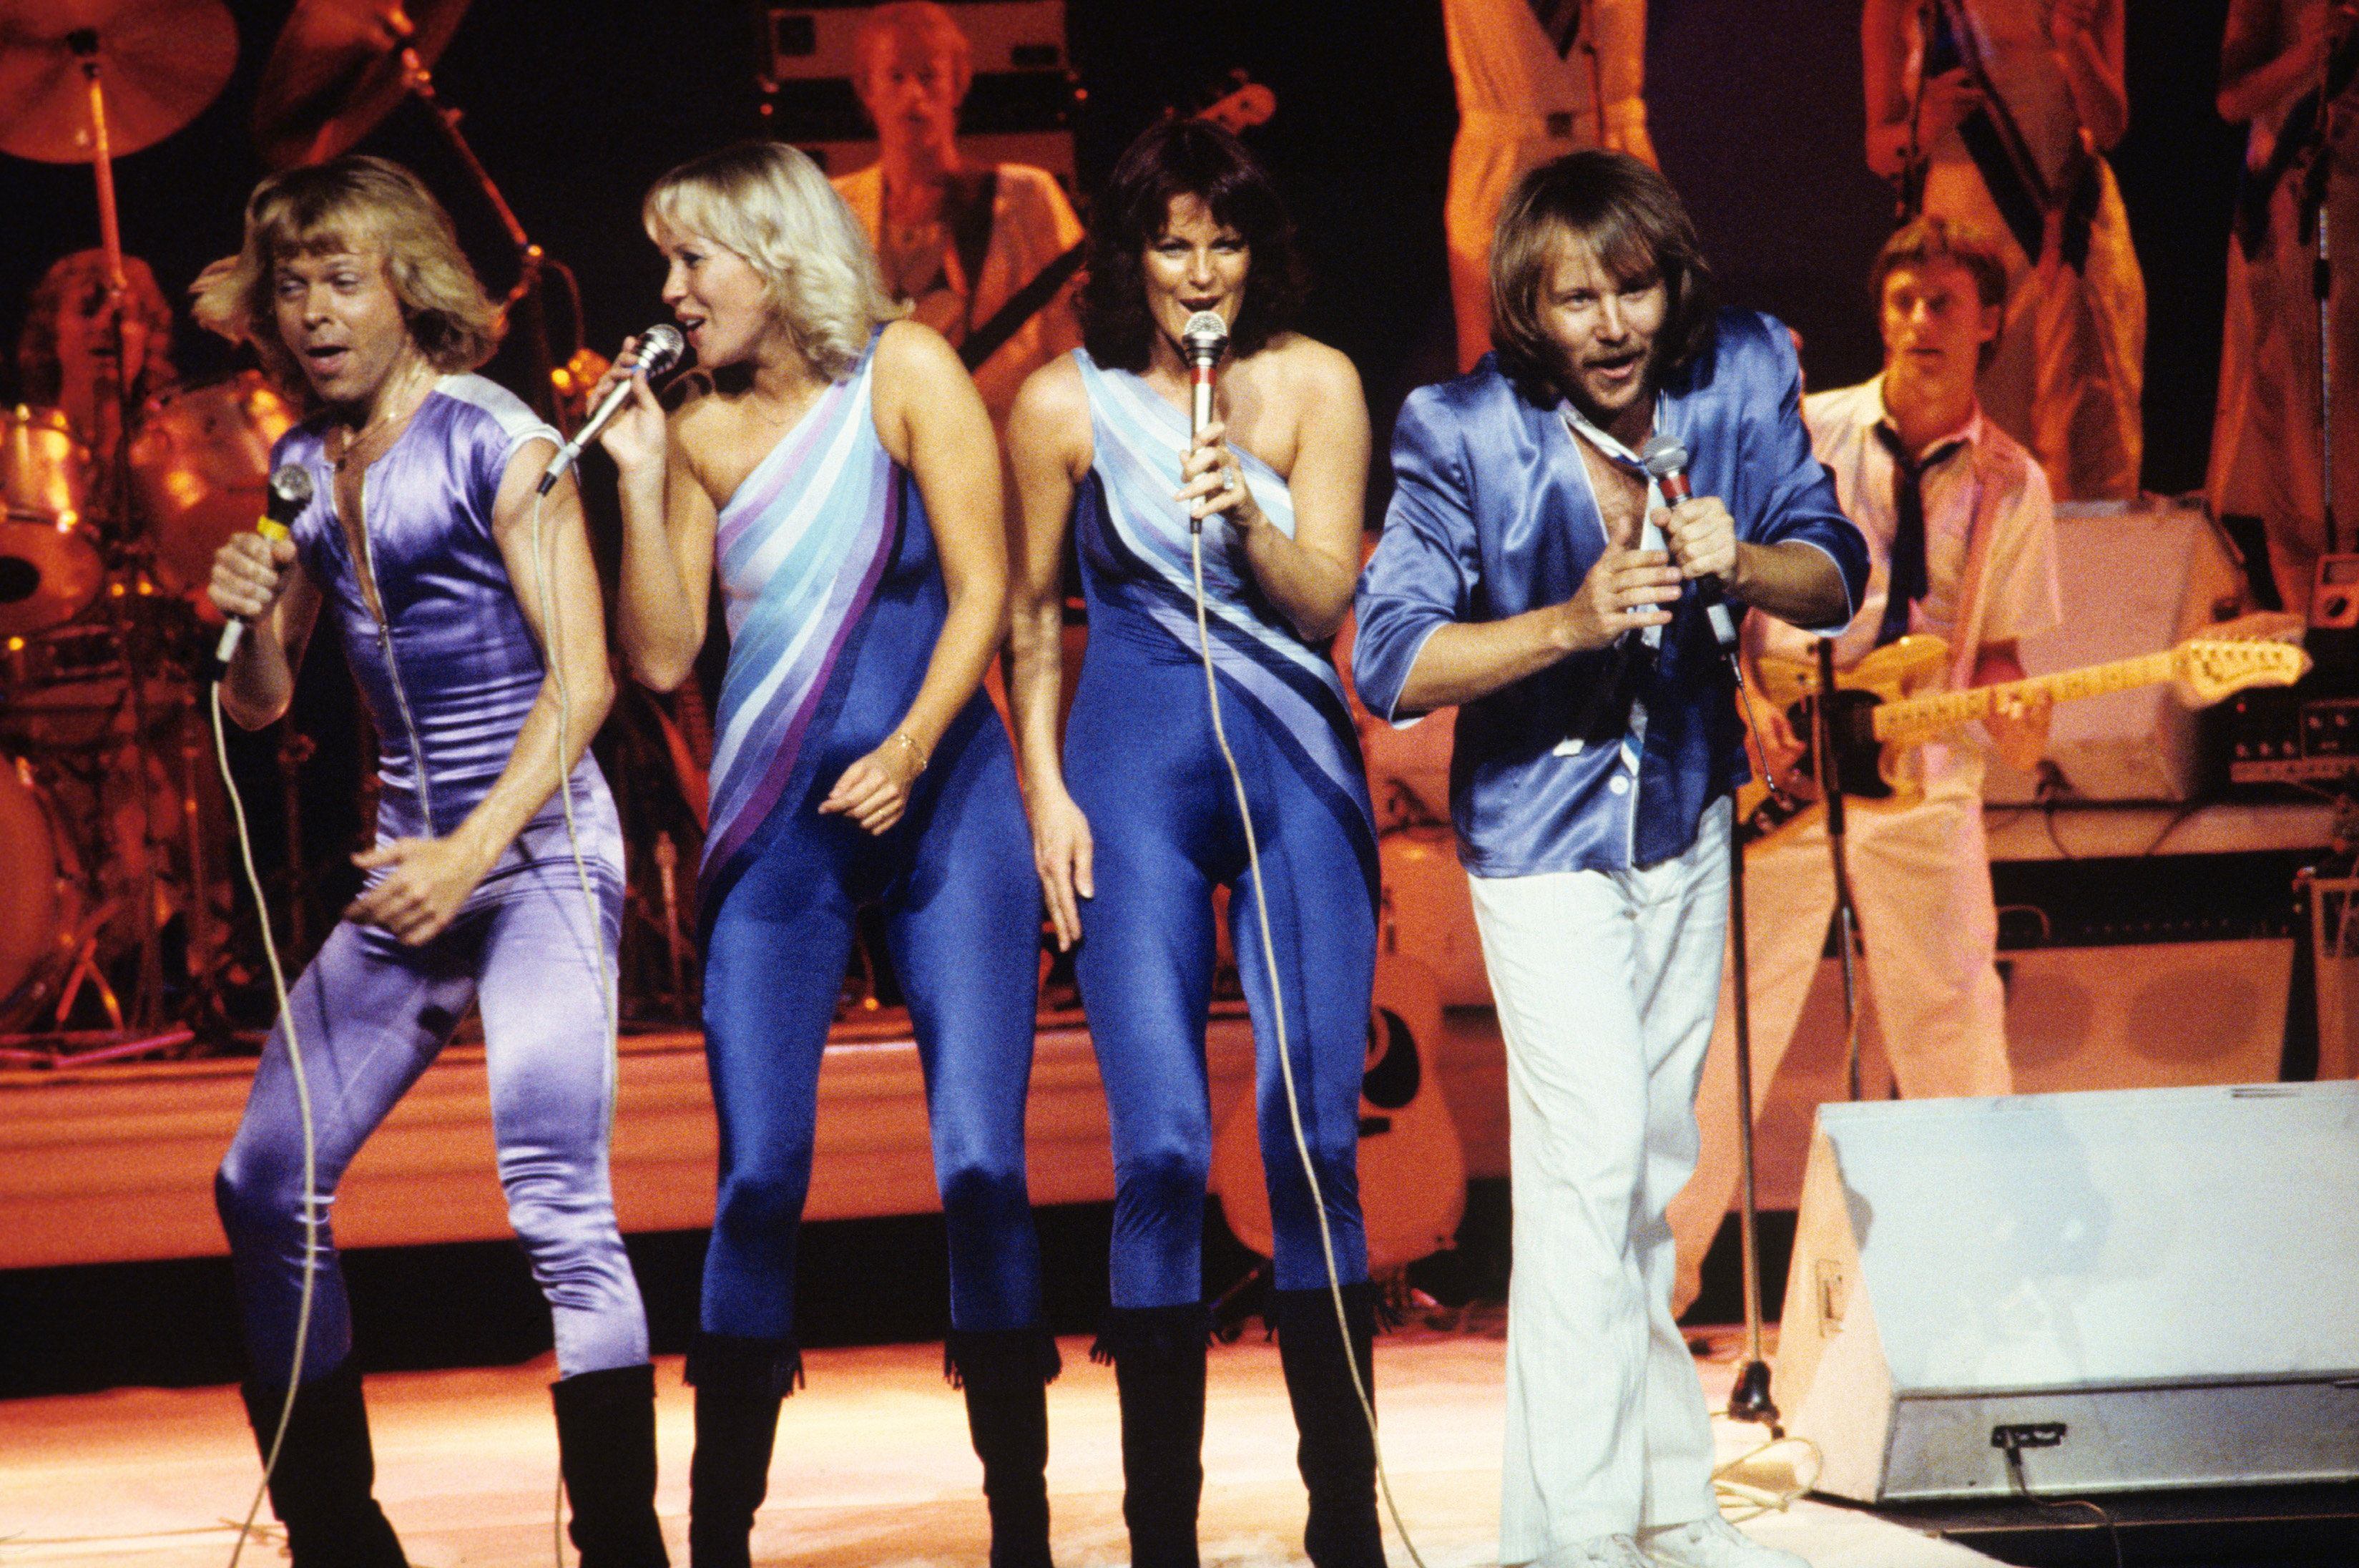 ABBA Returning With Two New Songs After More Than 35 Years